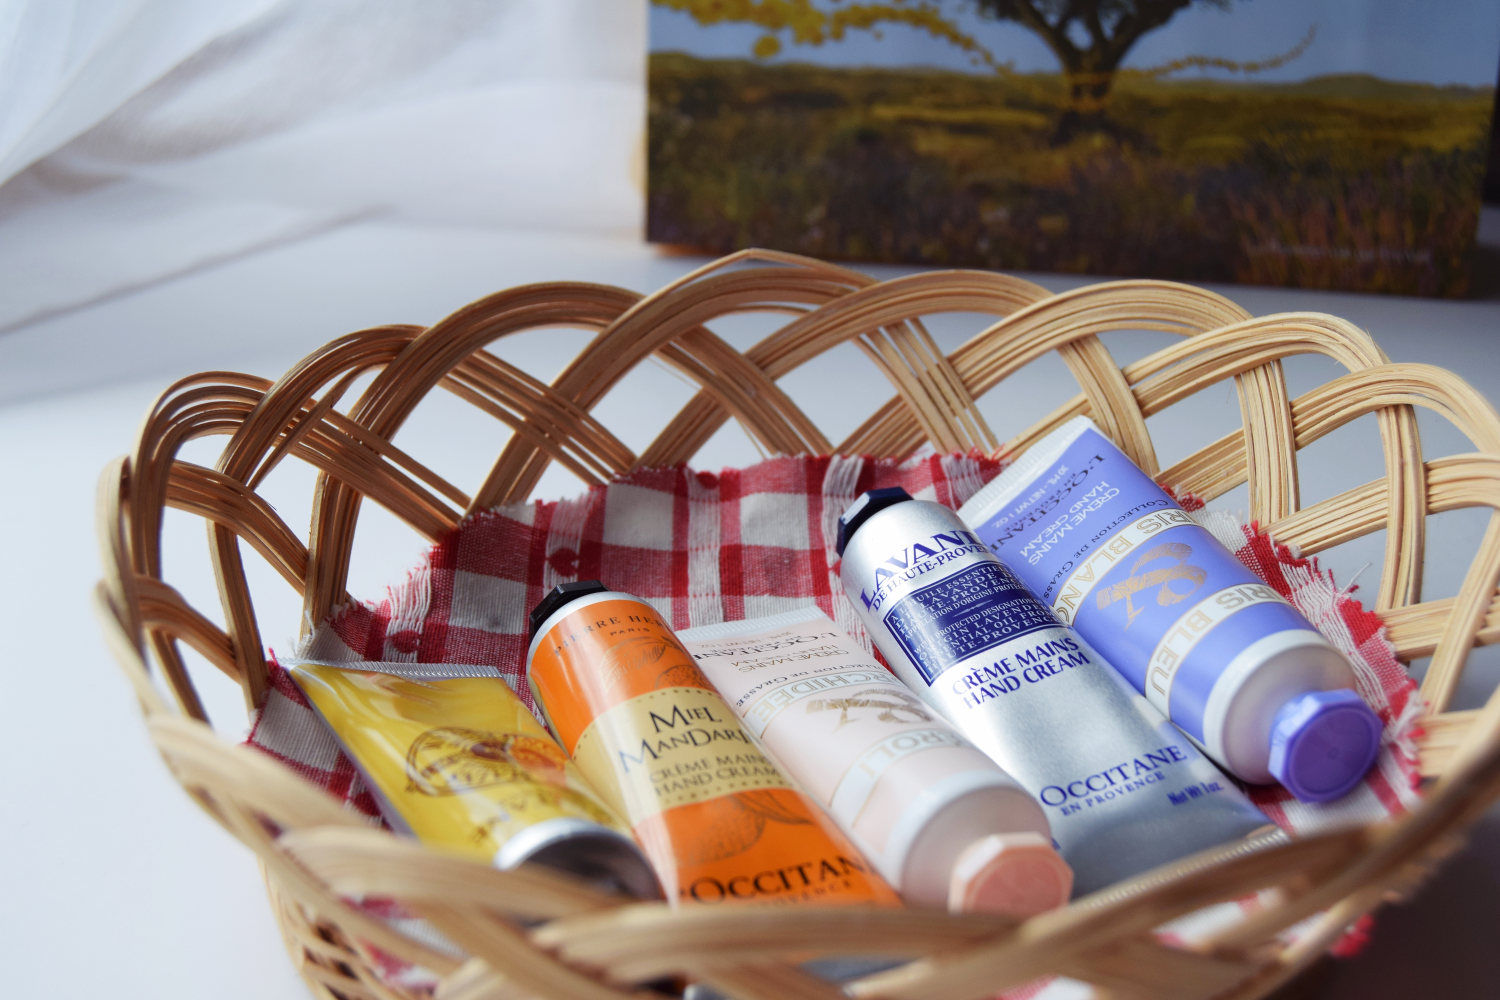 Loccitane_hand_creams_Zalabell_review_3